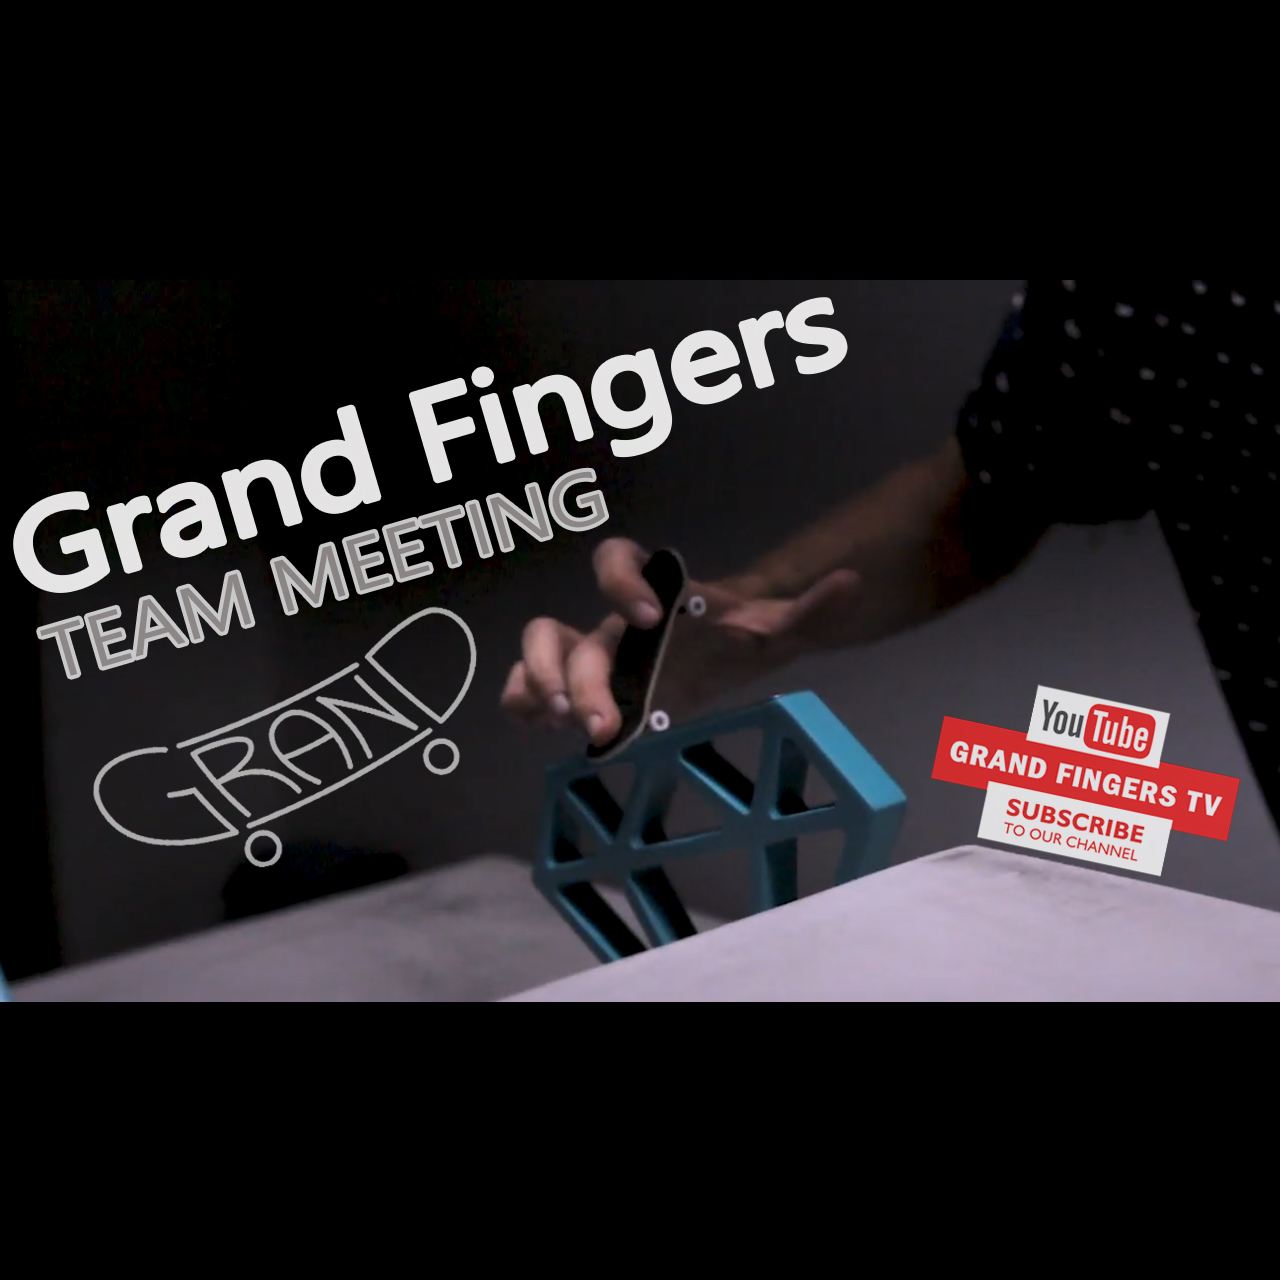 Grand Fingers Team Meeting 2018